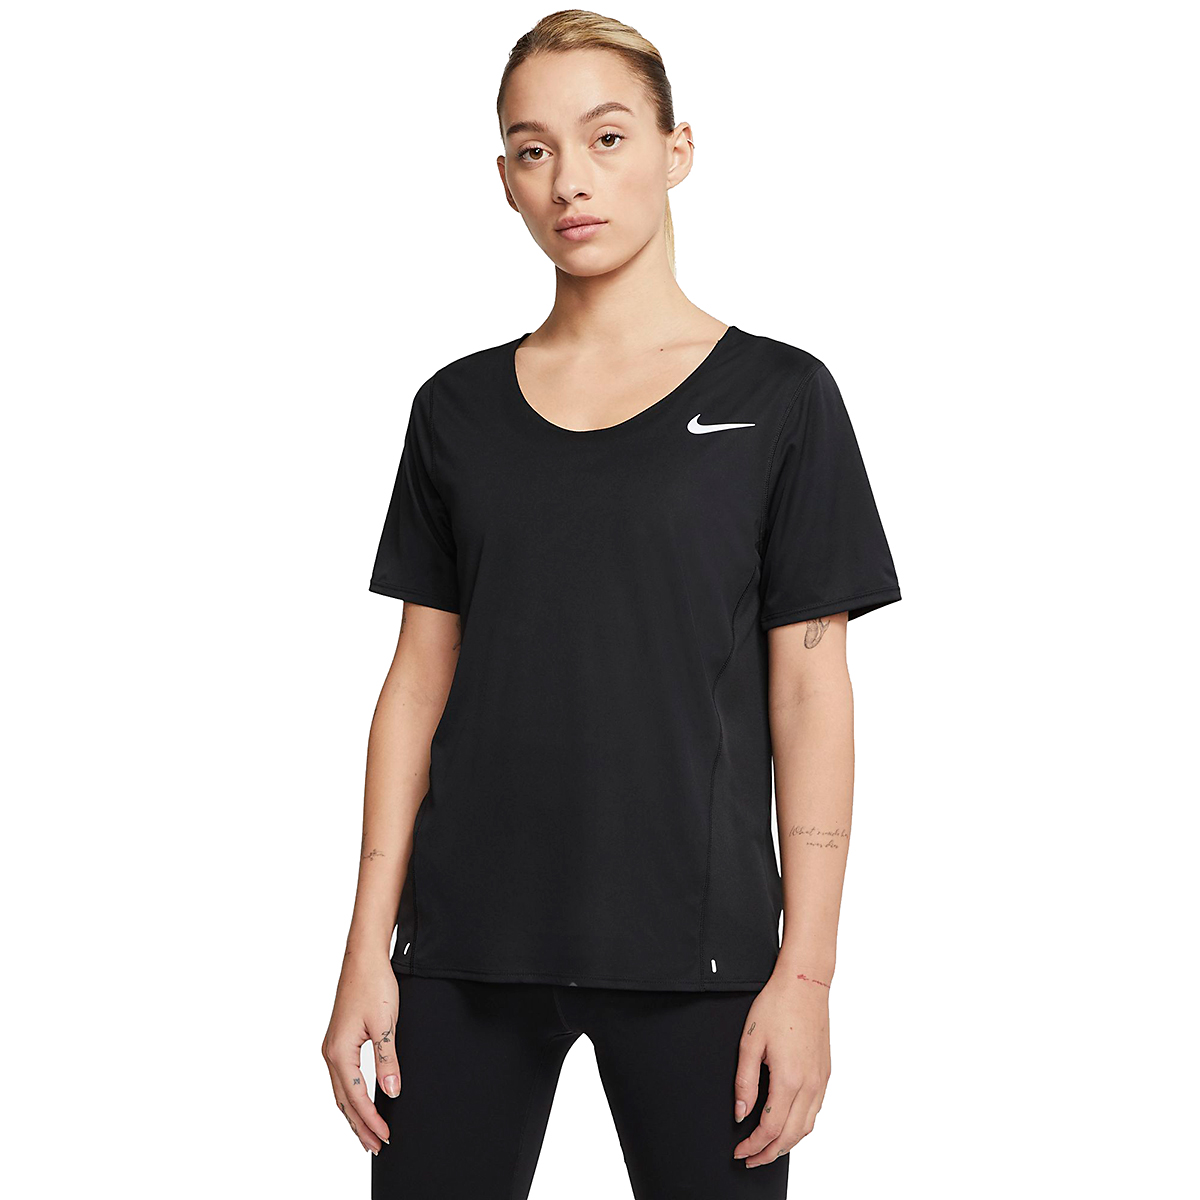 Women's Nike City Sleek Short Sleeve Top - Color: Black/Reflective Silver - Size: XS, Black/Reflective Silver, large, image 1